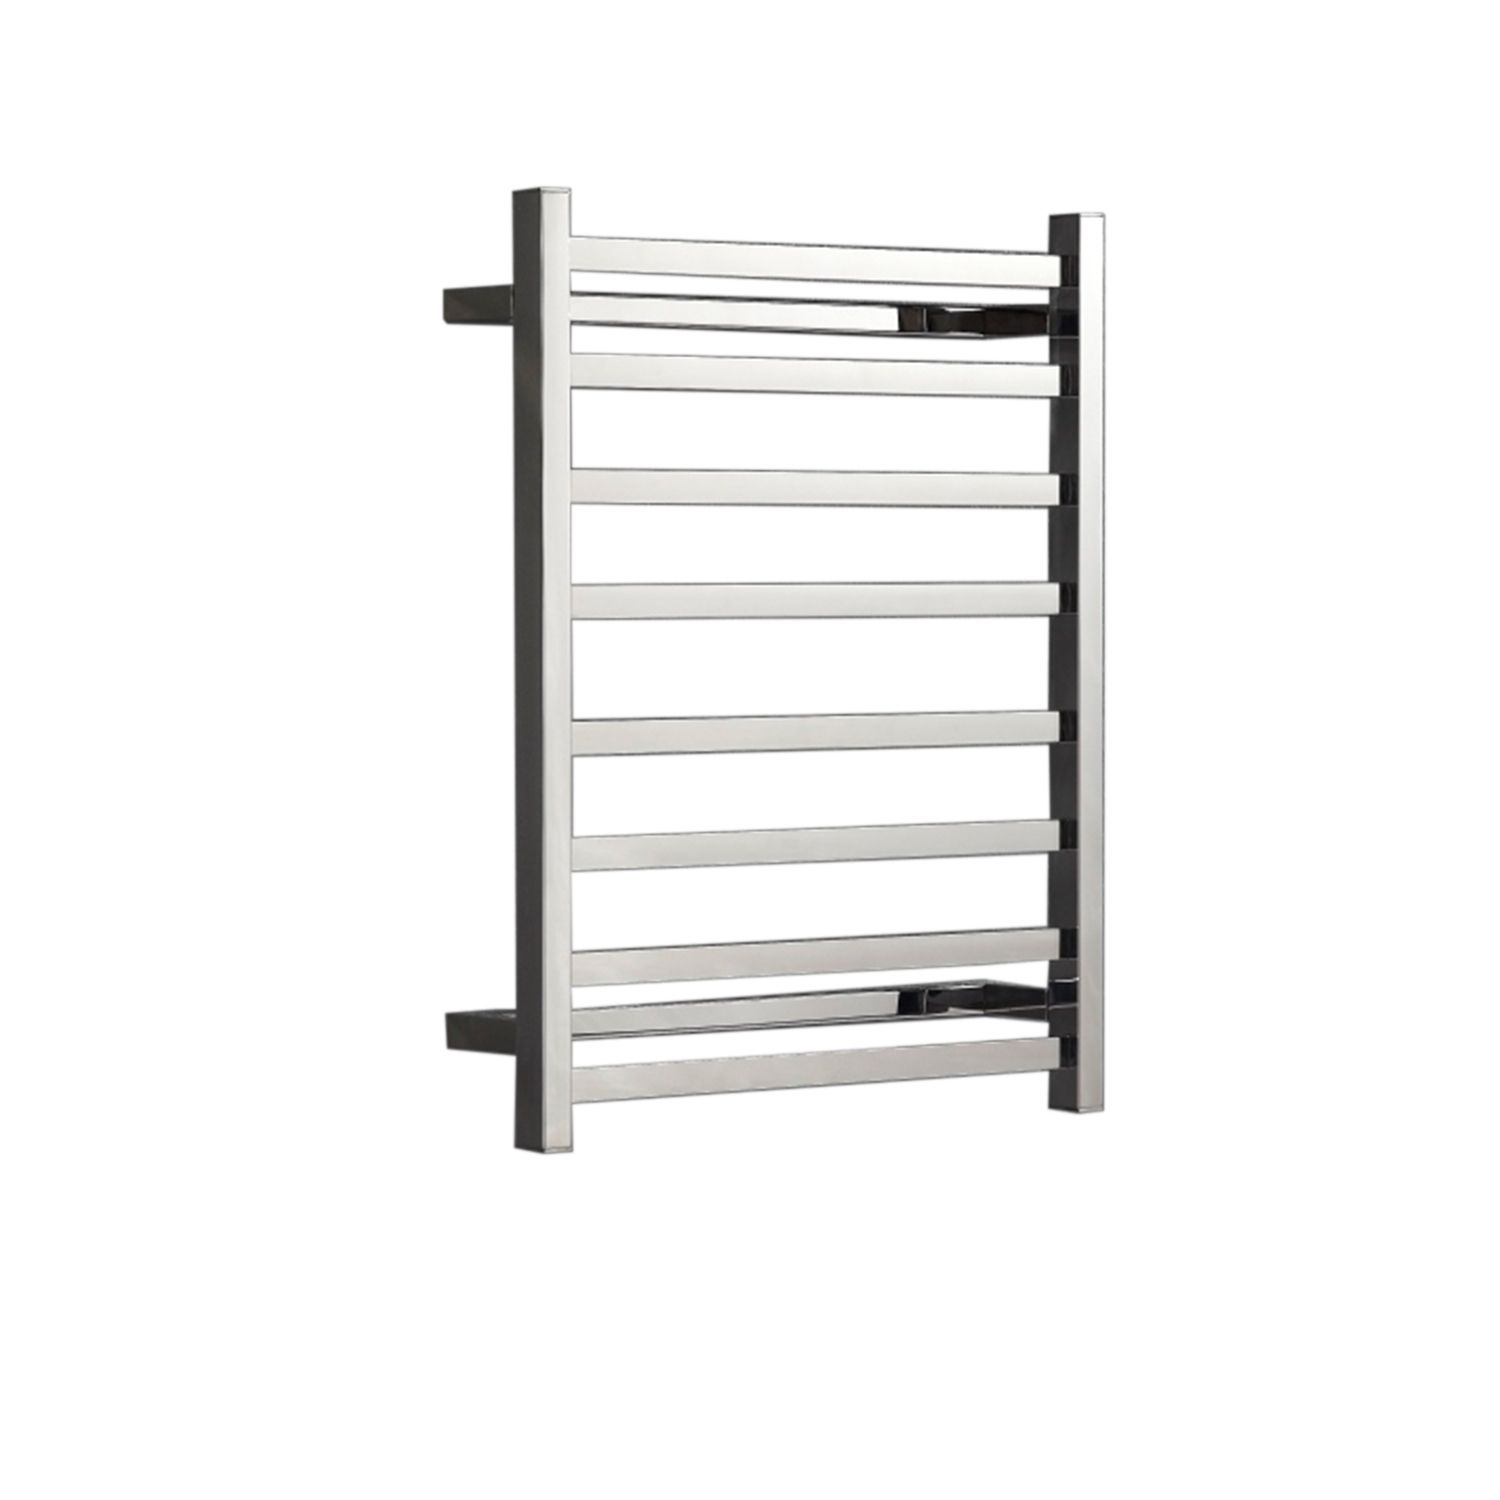 Hotwire - Heated Towel Rail - Square Bar (W530mm x H700mm)